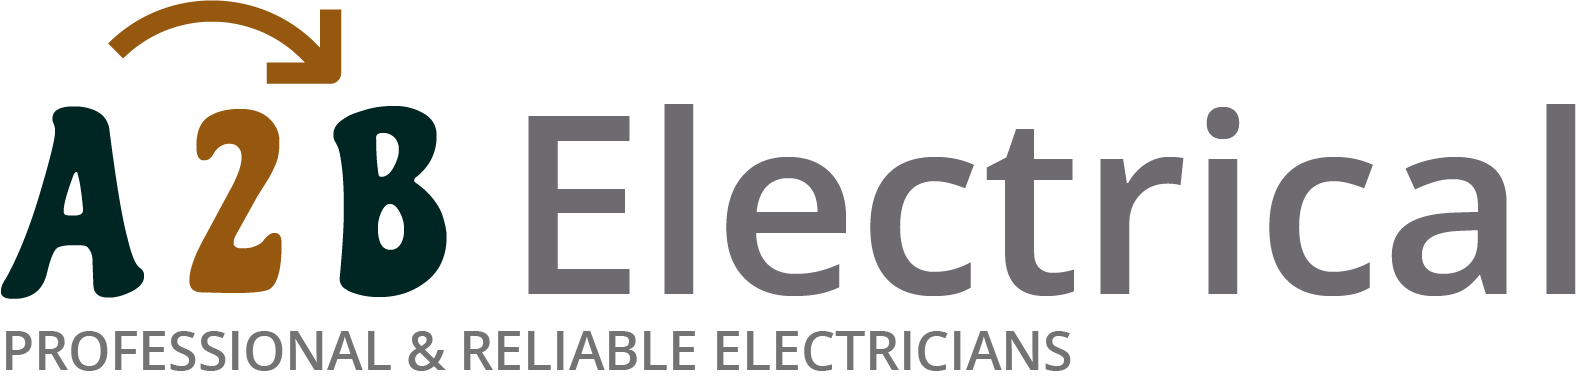 If you have electrical wiring problems in Enfield, we can provide an electrician to have a look for you.